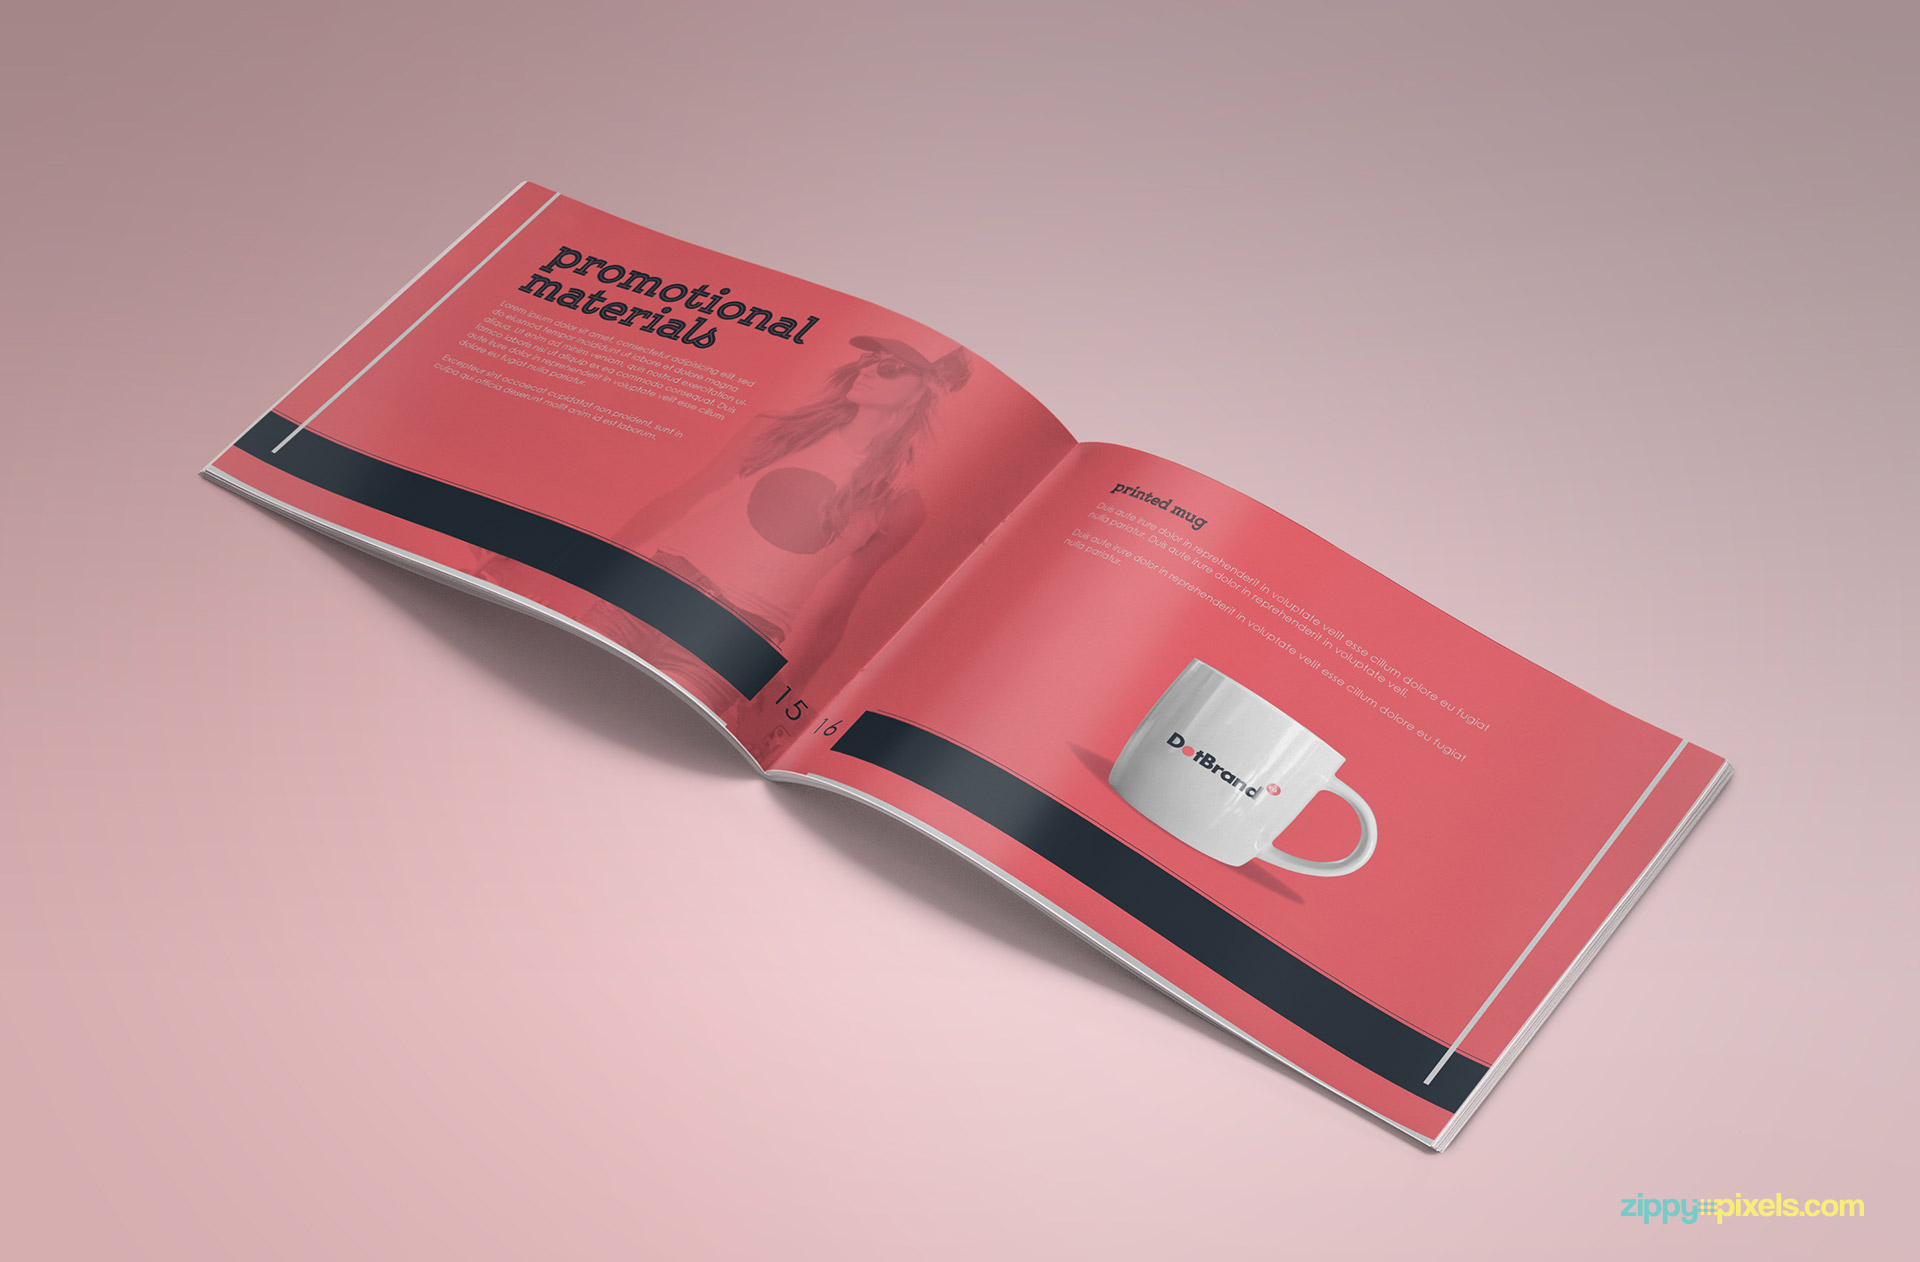 13-brand-book-8-promotional-materials